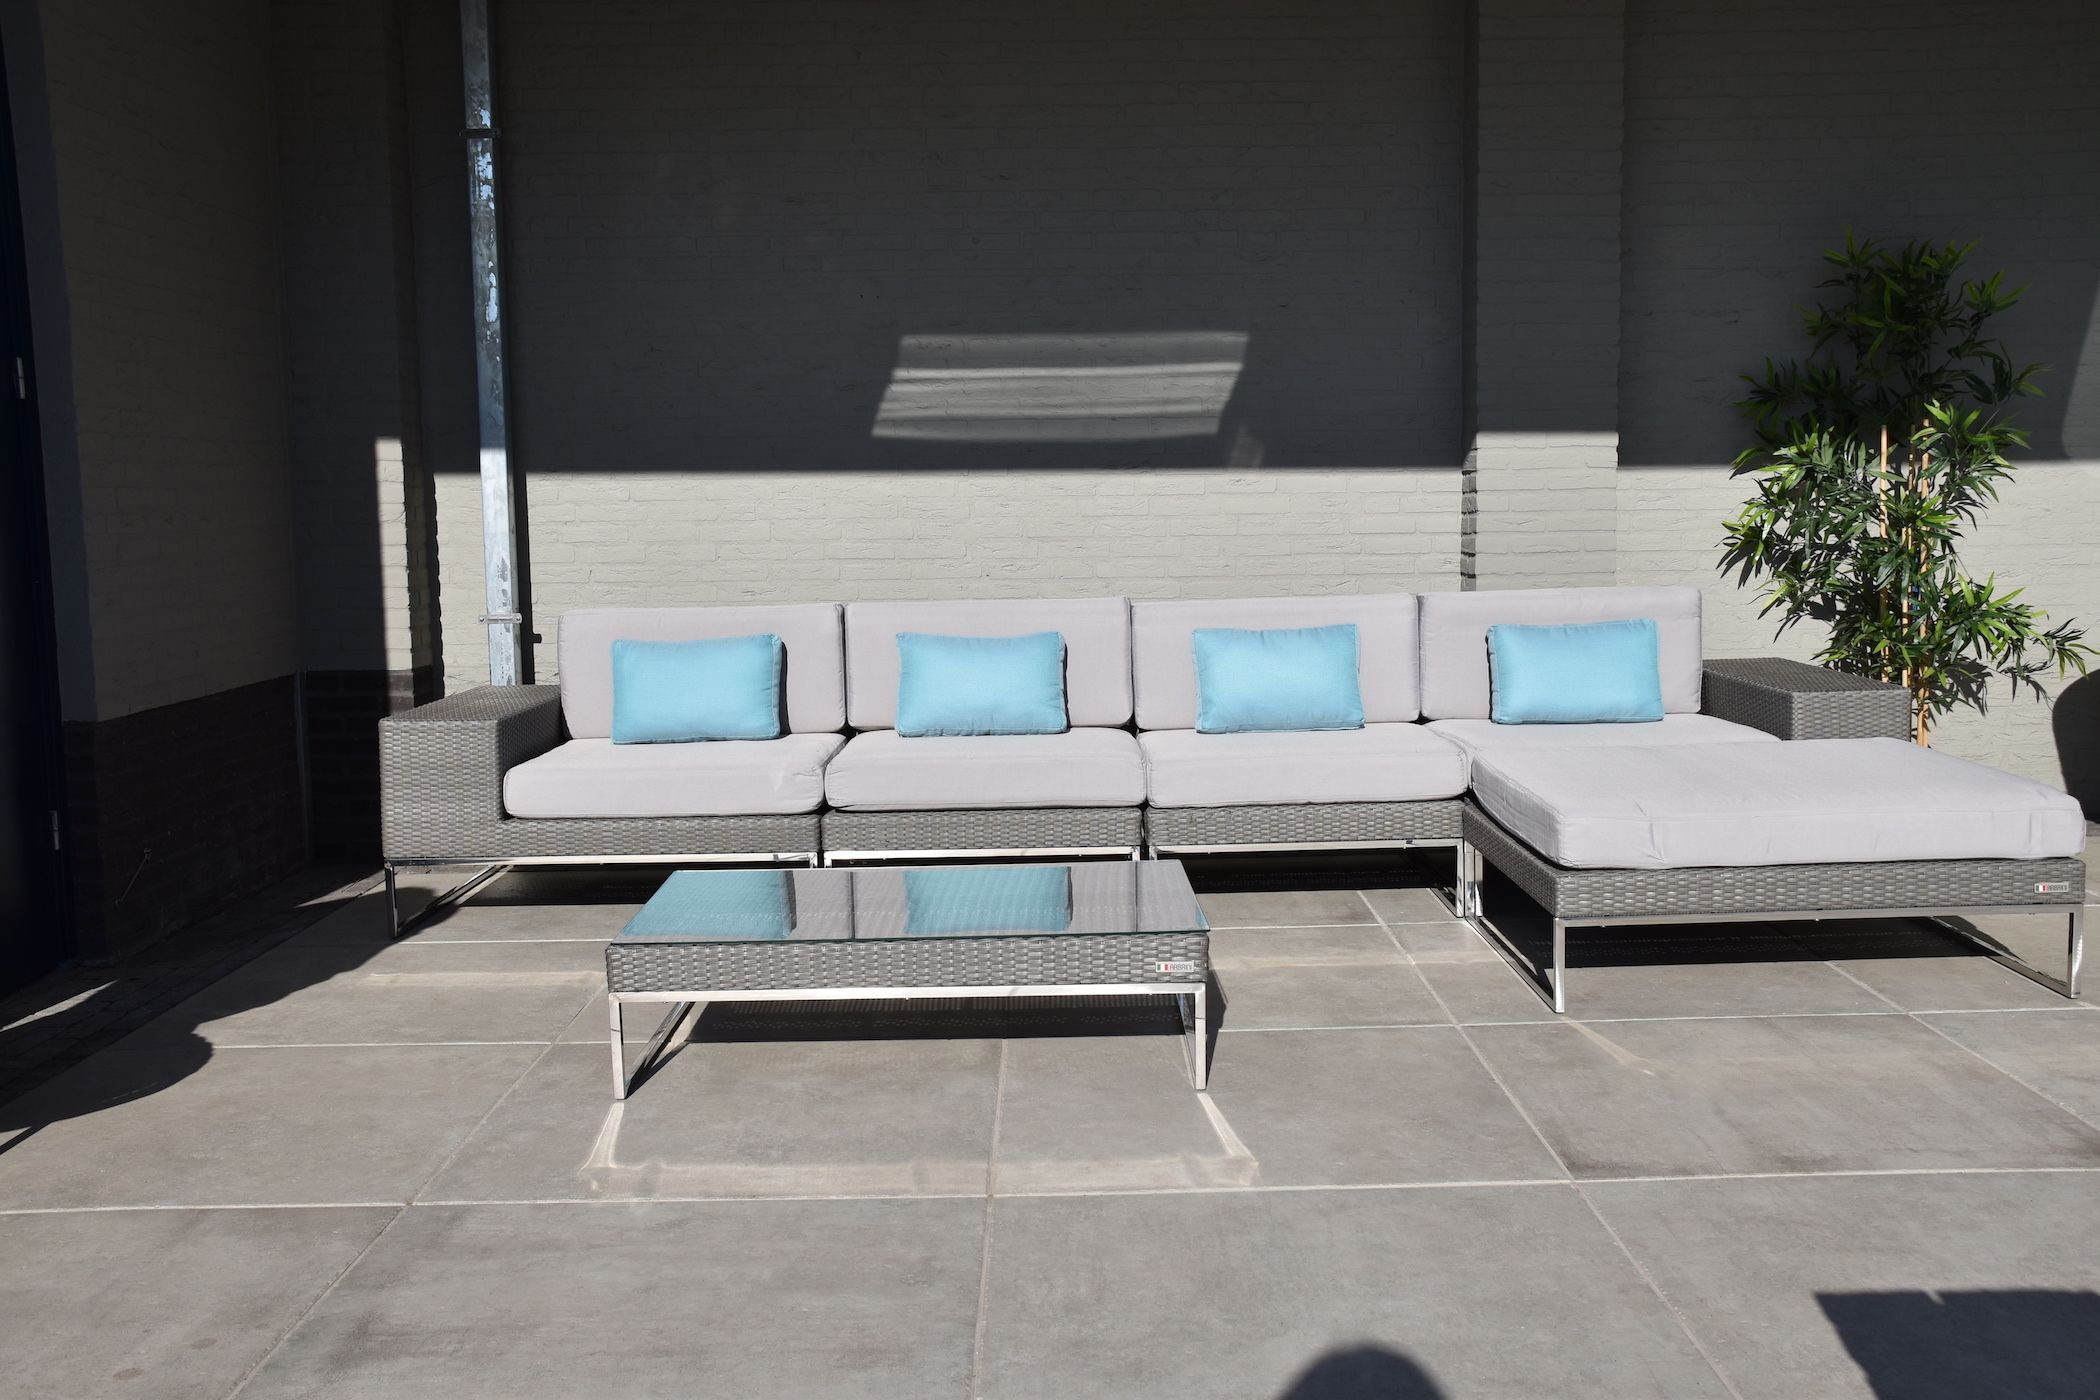 Nieuw limited edition lounge bank lineo plat wicker grijs met rvs